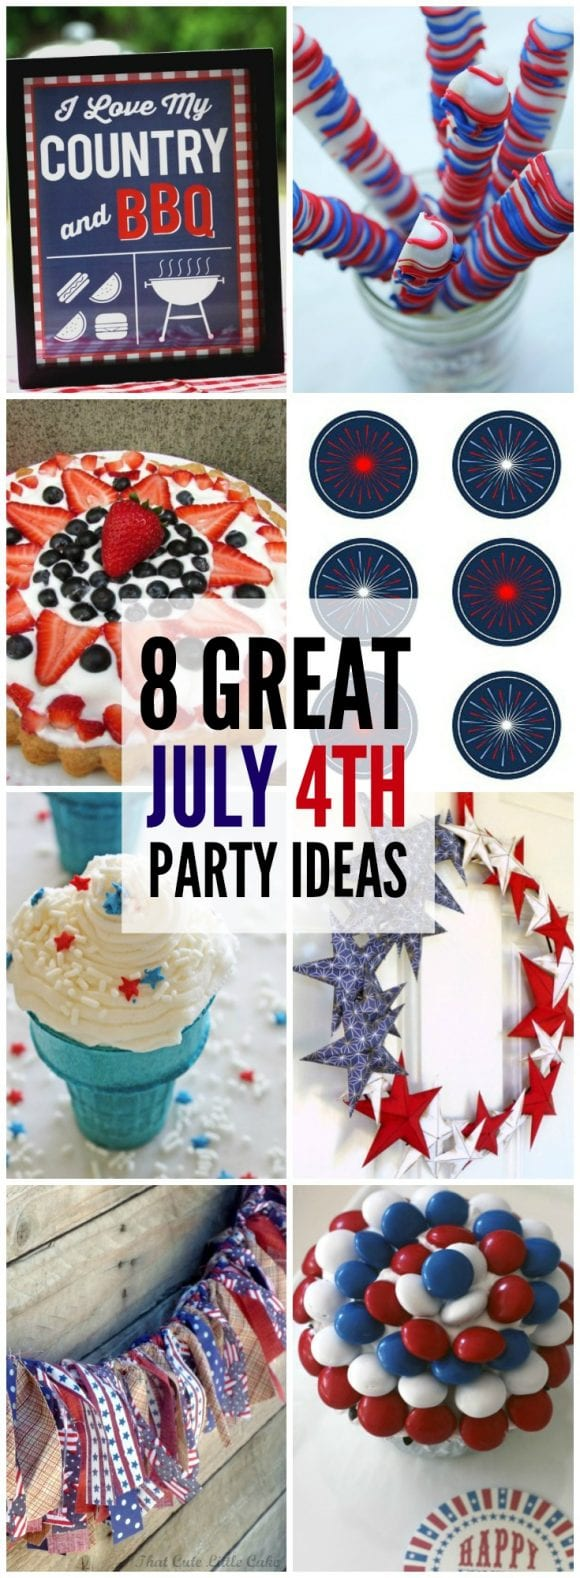 july4th-party-ideas-7 (1)